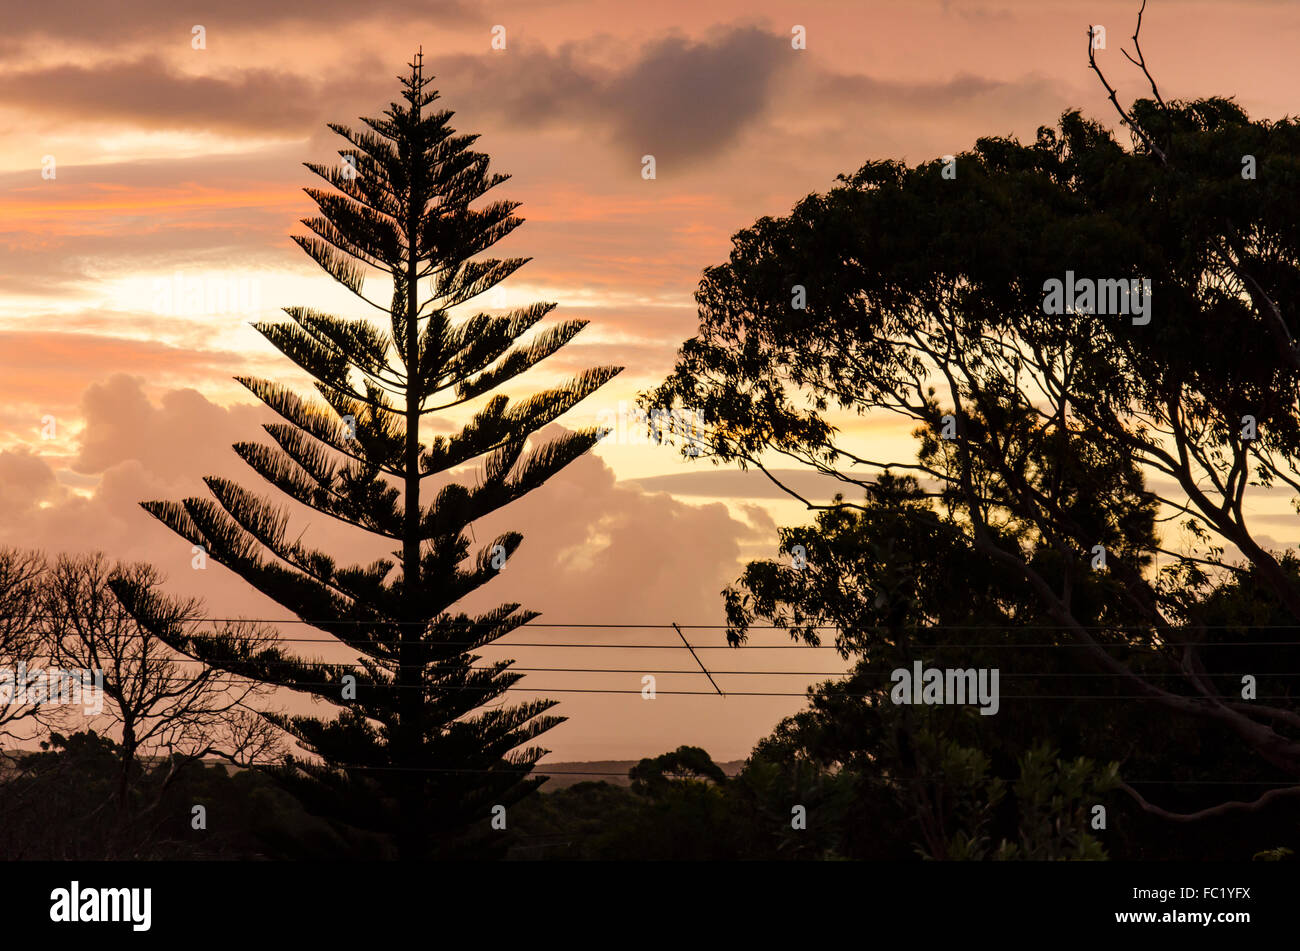 A suburban sunset with a silhouetted pine tree and Eucalypt tree - Stock Image